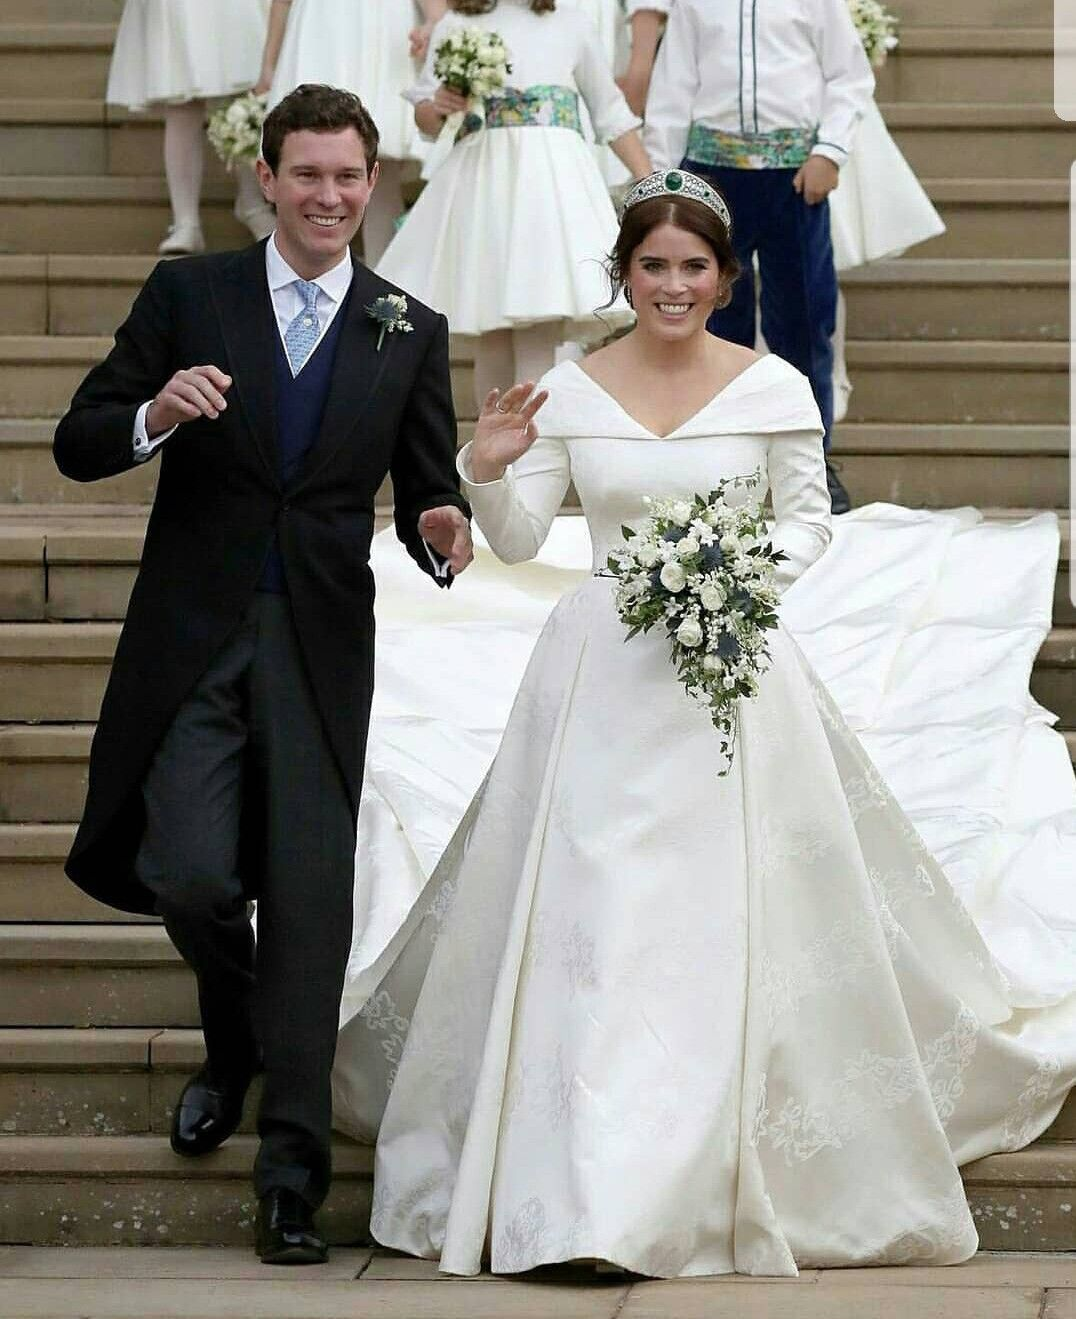 Billionaire Getty marries in Rome with his bride in an